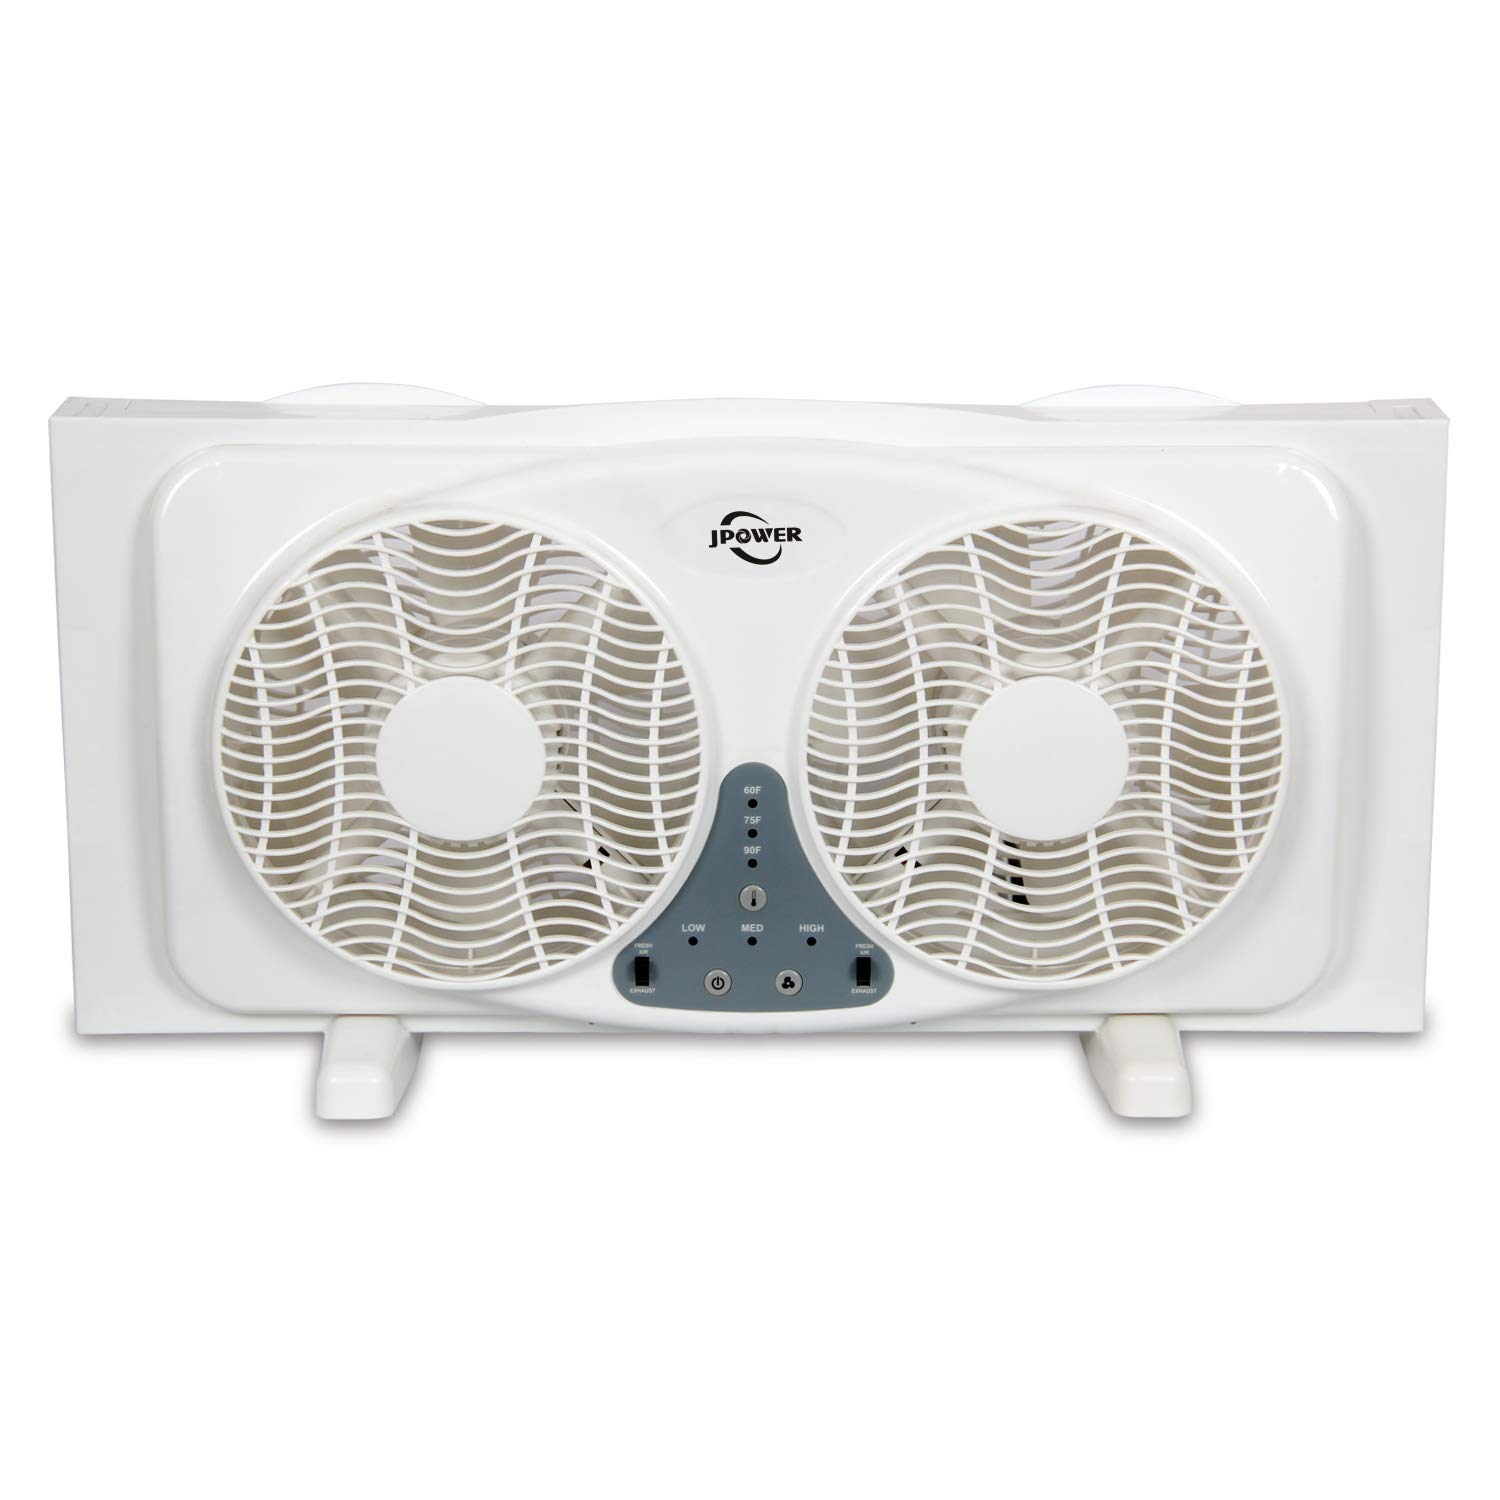 JPOWER Digital Window Fan with Twin 9-Inch Reversible Airflow Blades and 3-Speed Fan Switch with Built-in Thermostat